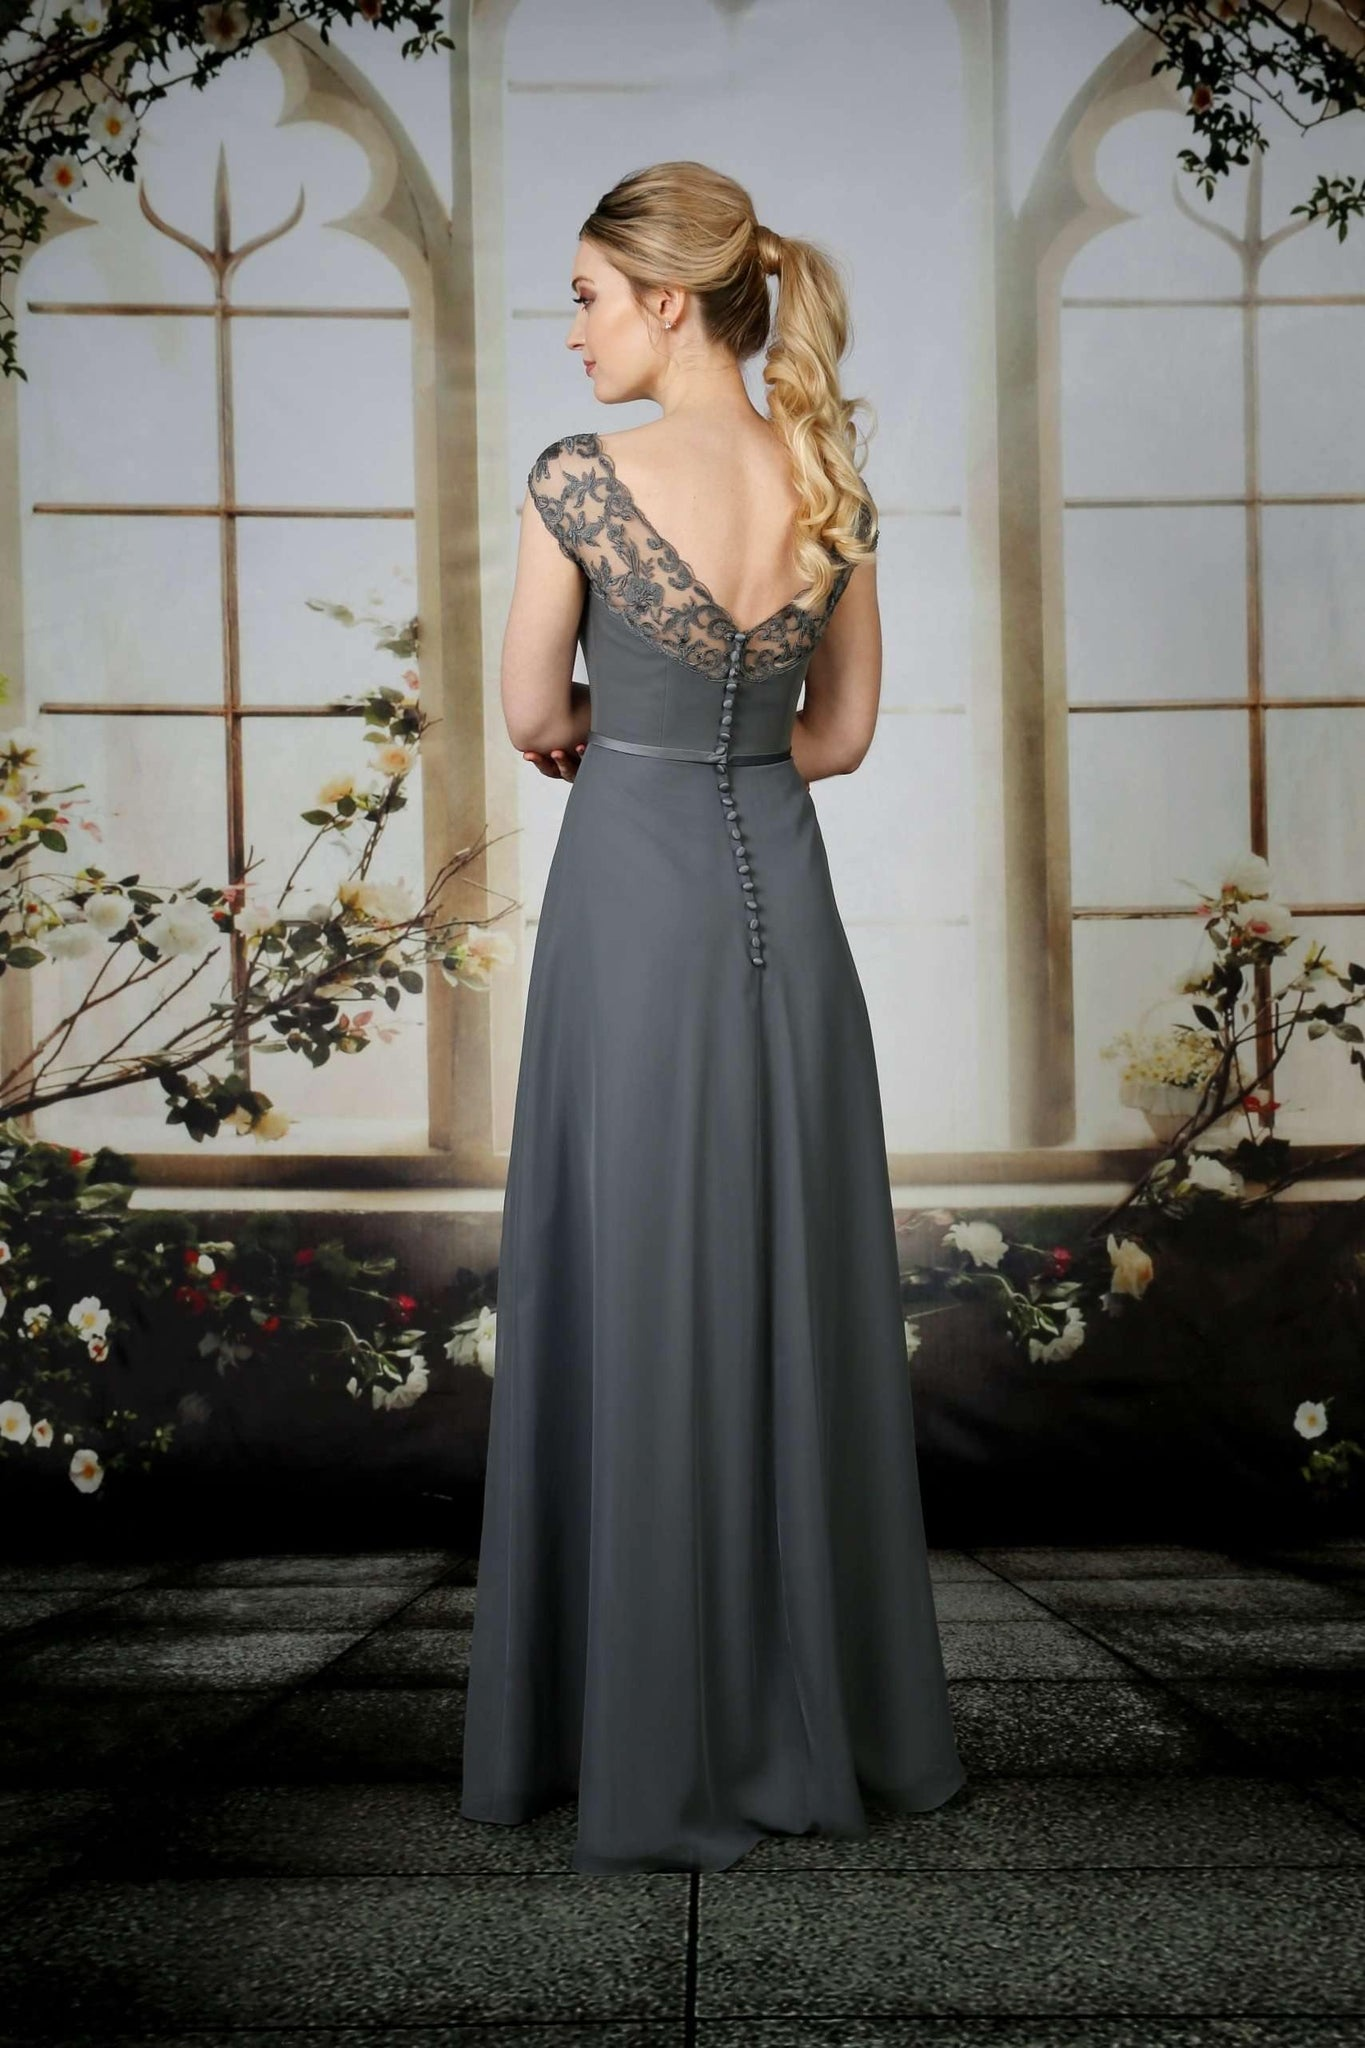 GISELLE Occasion - Adore Bridal and Occasion Wear